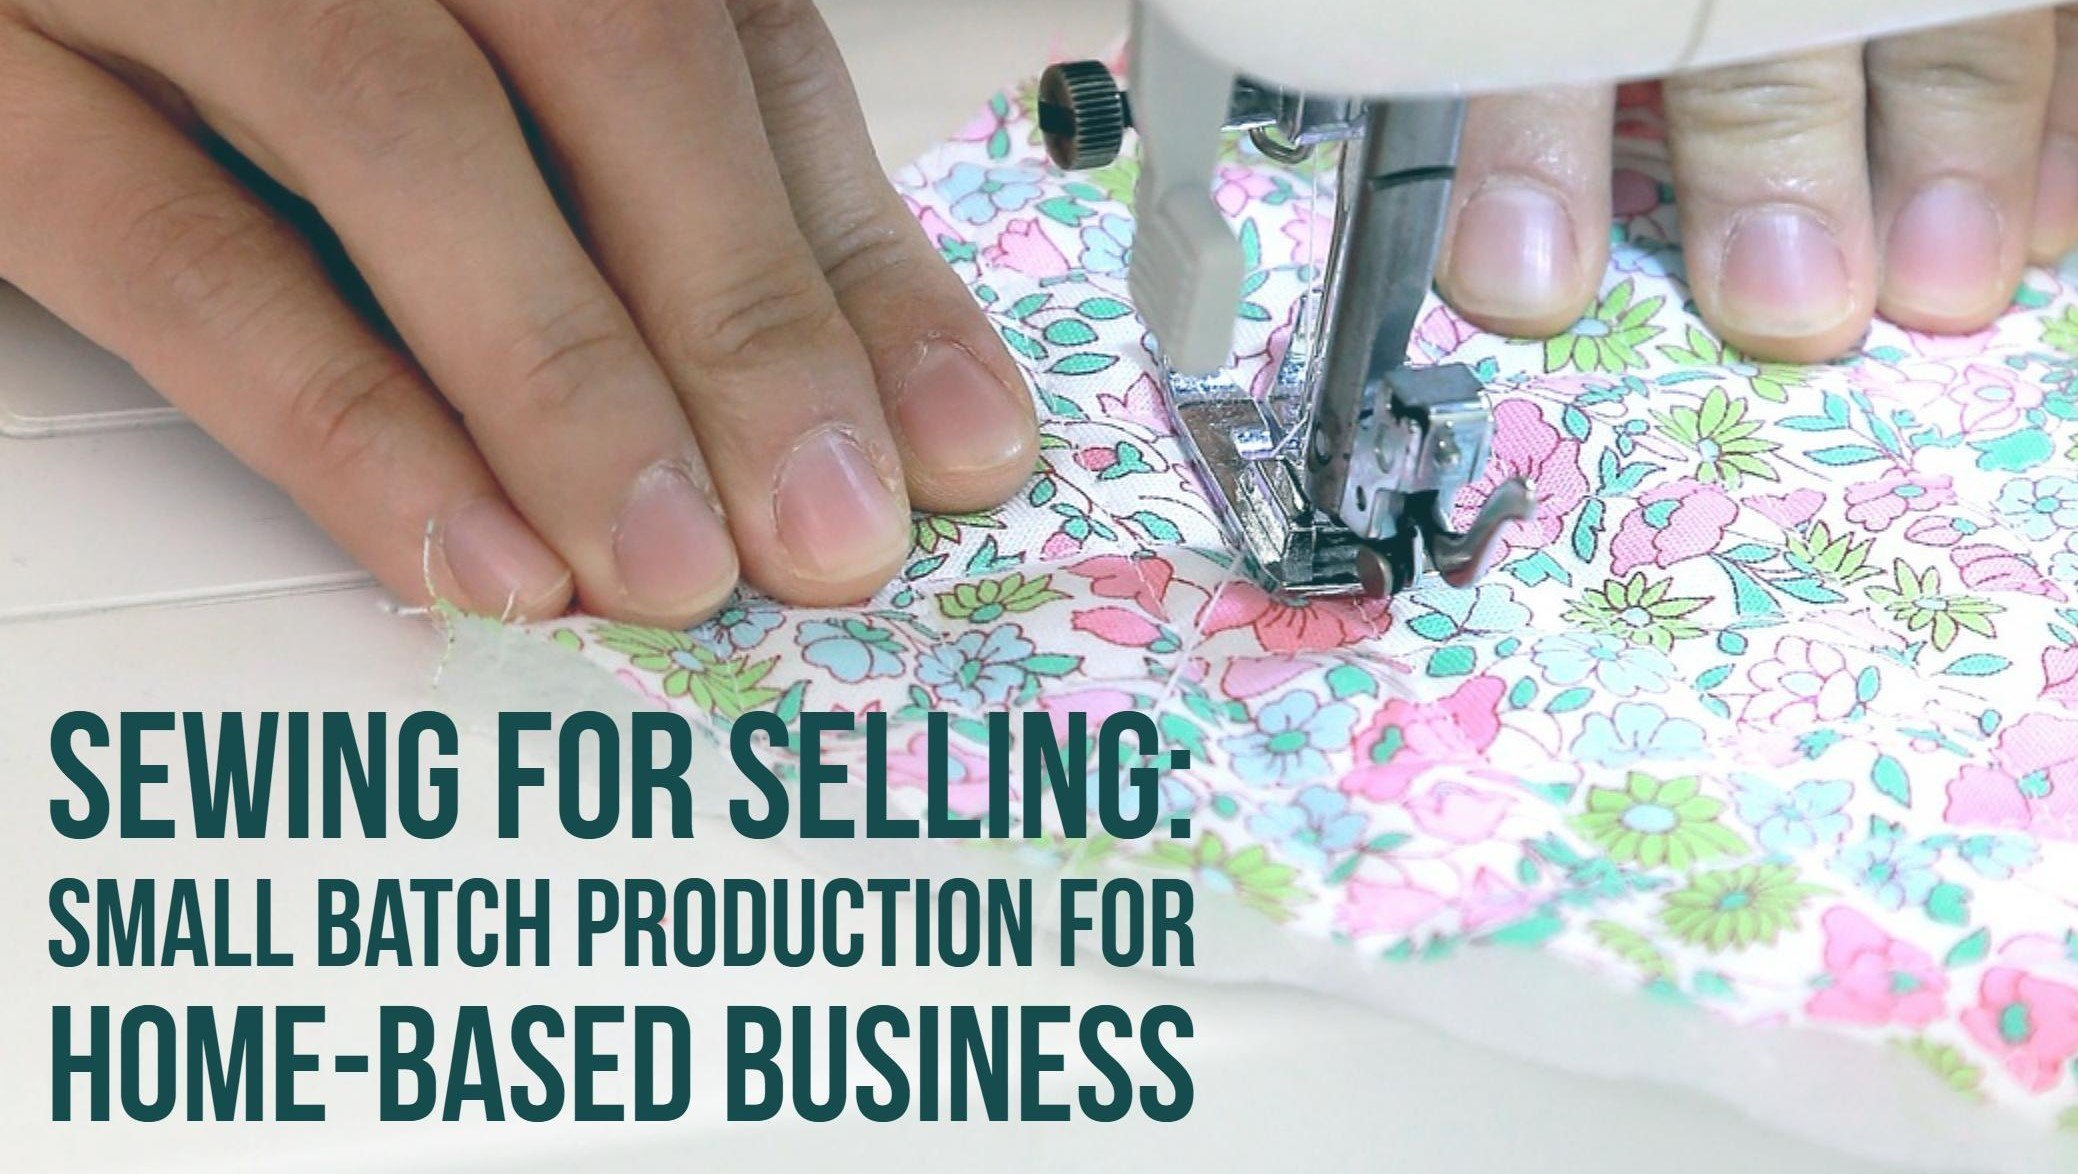 Sewing For Selling: Small Batch Production for Home-based Business